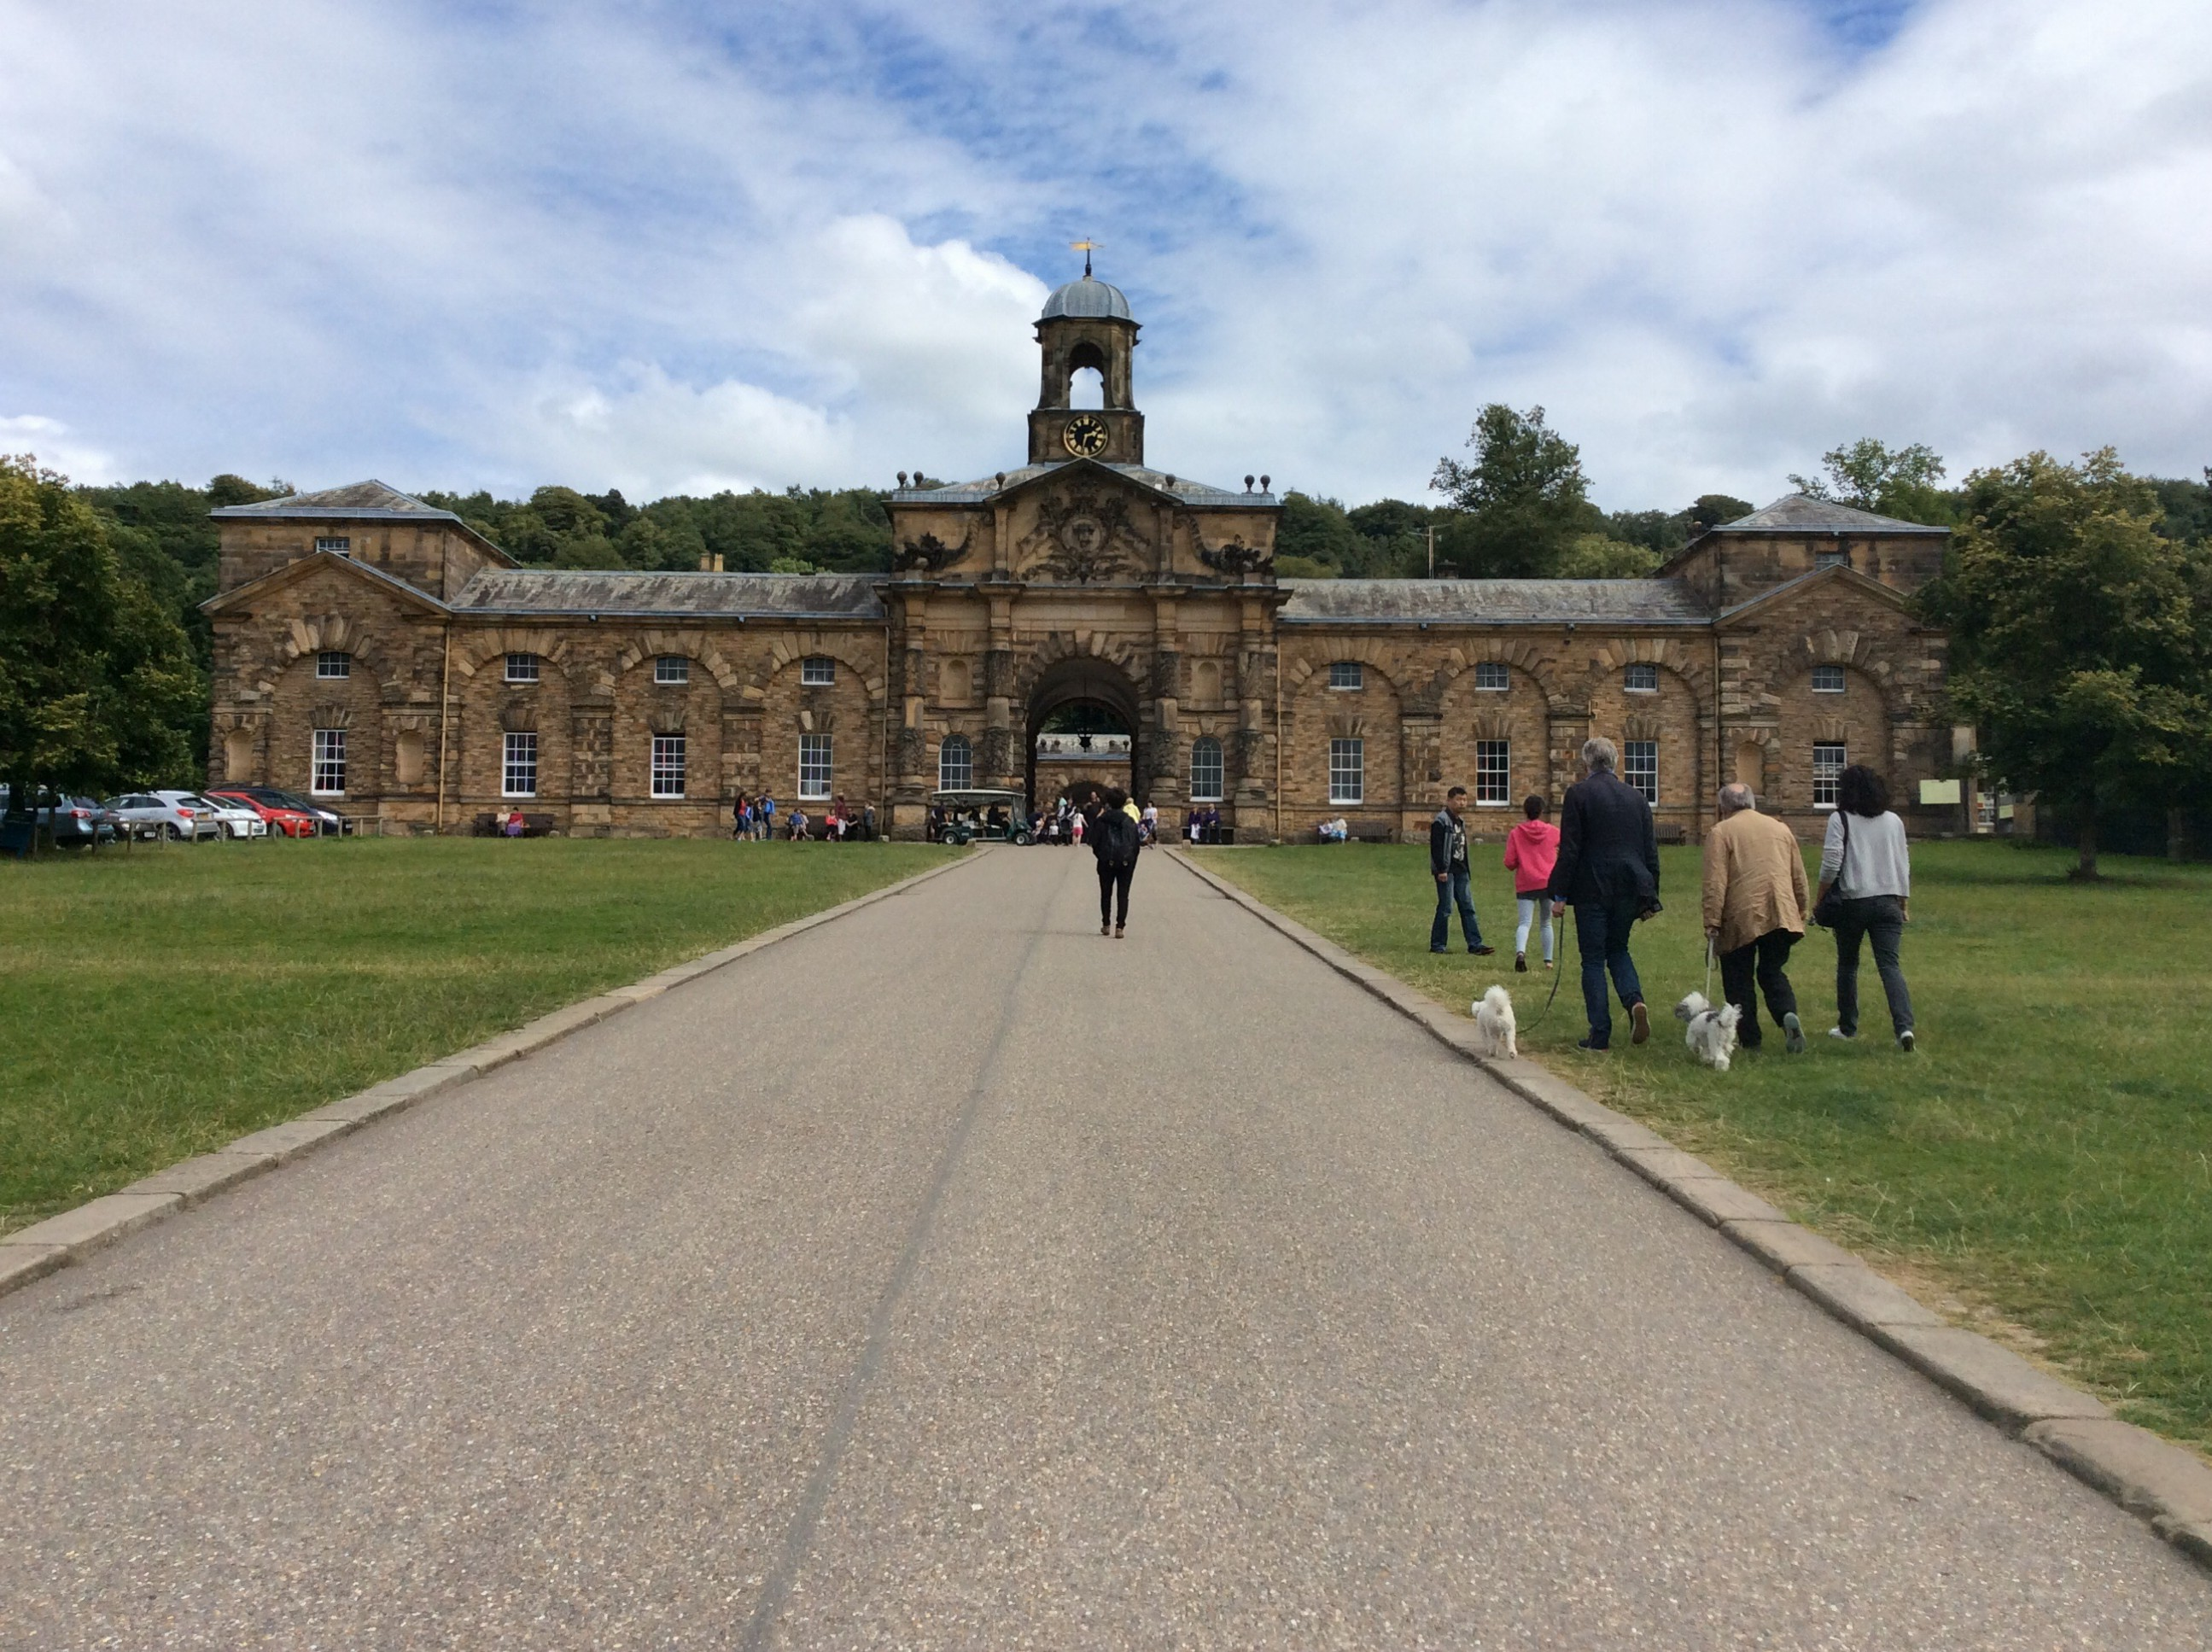 Walking toward the Chatsworth stables.  Tim, Jim, Sadie and mutts on right.